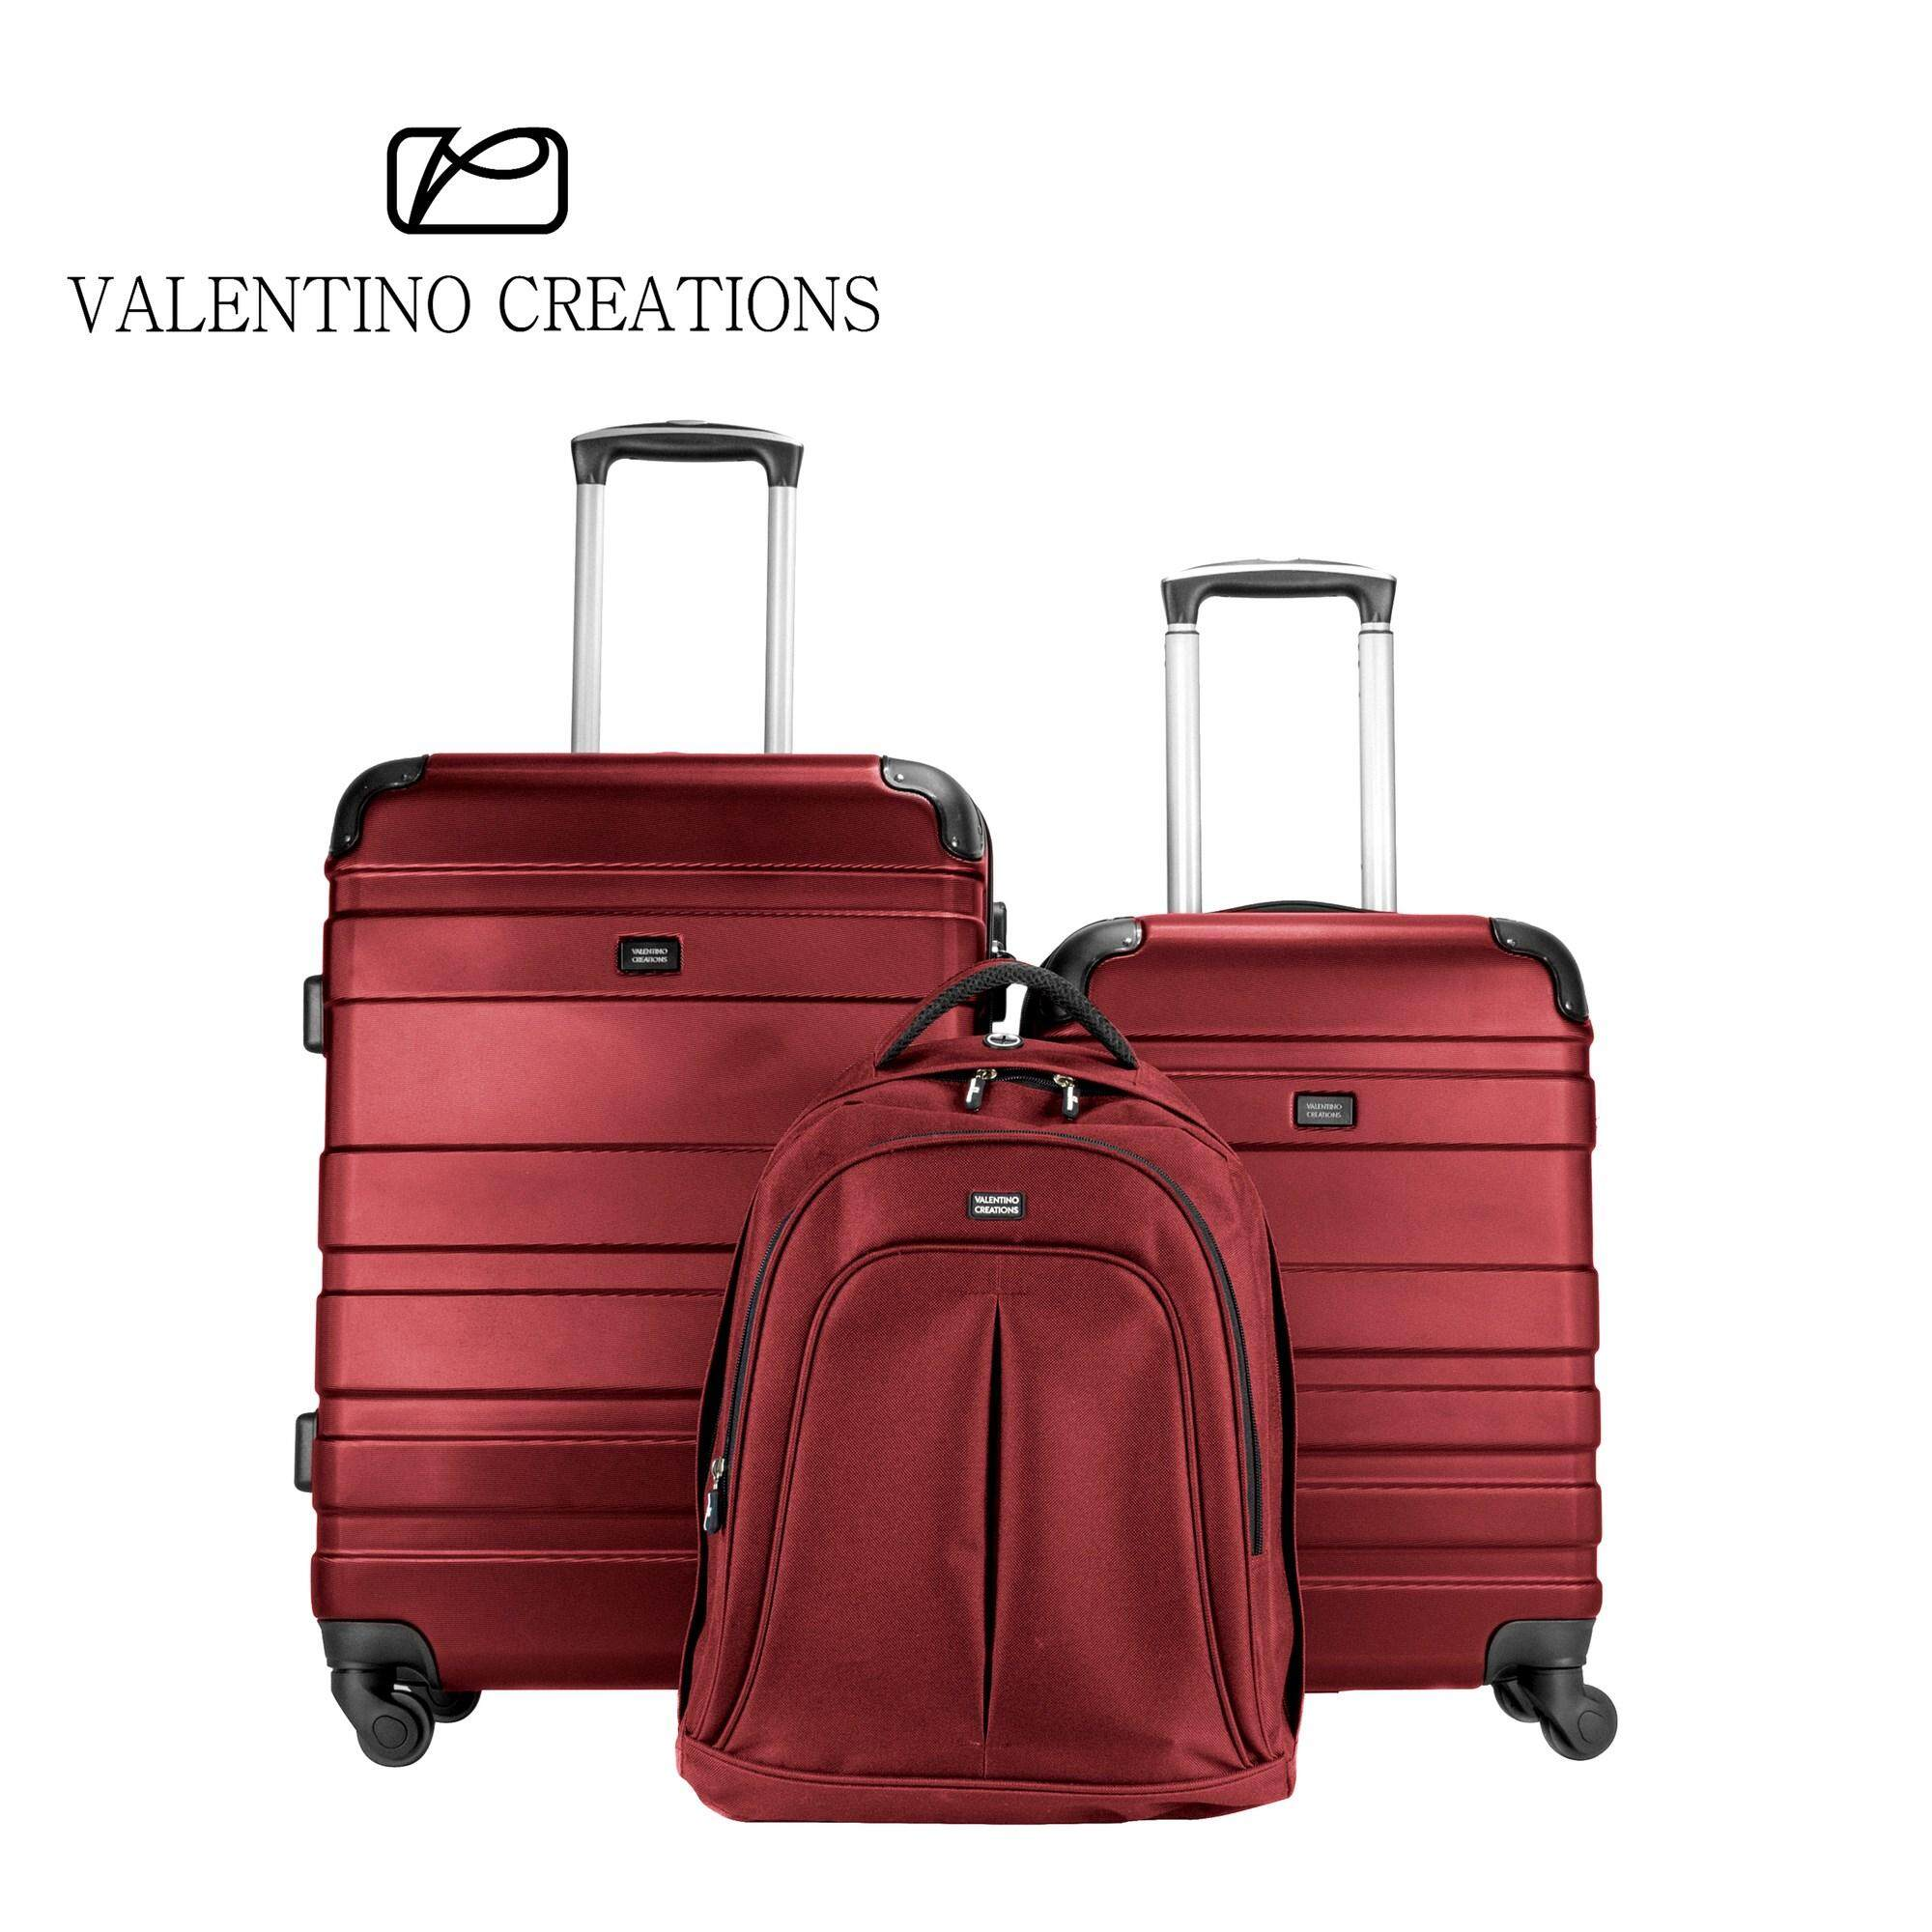 d28b6c1f2737 Valentino Creations Bobcat III 2-In-1 Luggage Set (20